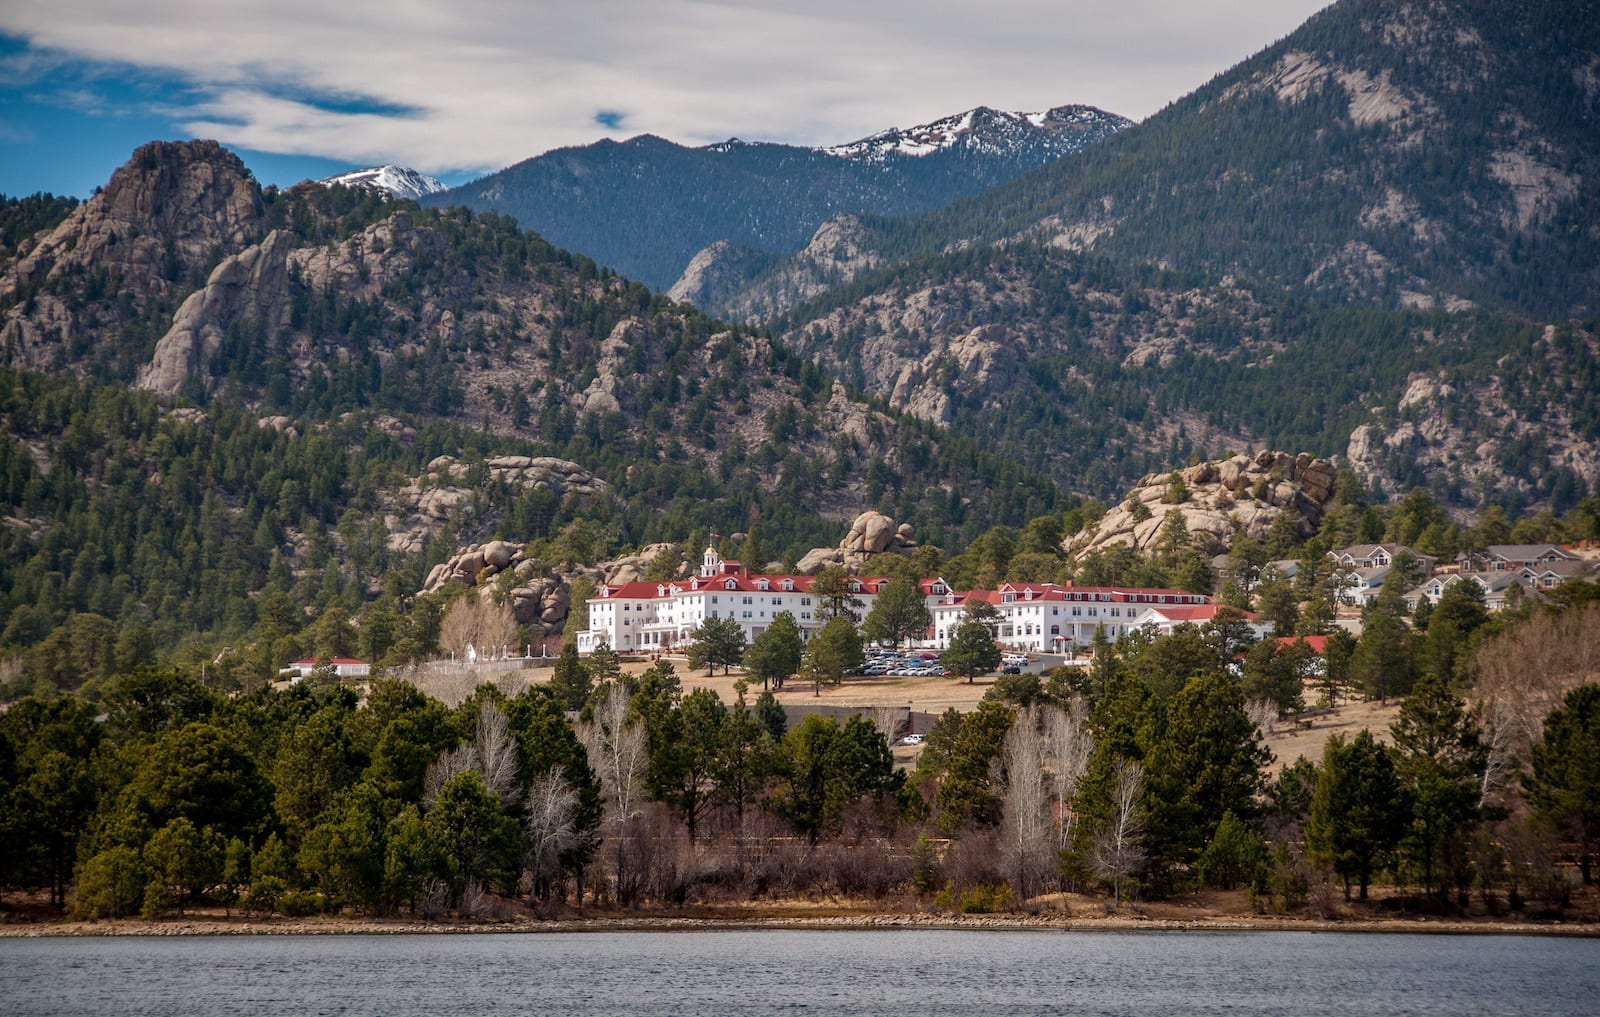 Stanley Hotel Lake Estes Colorado